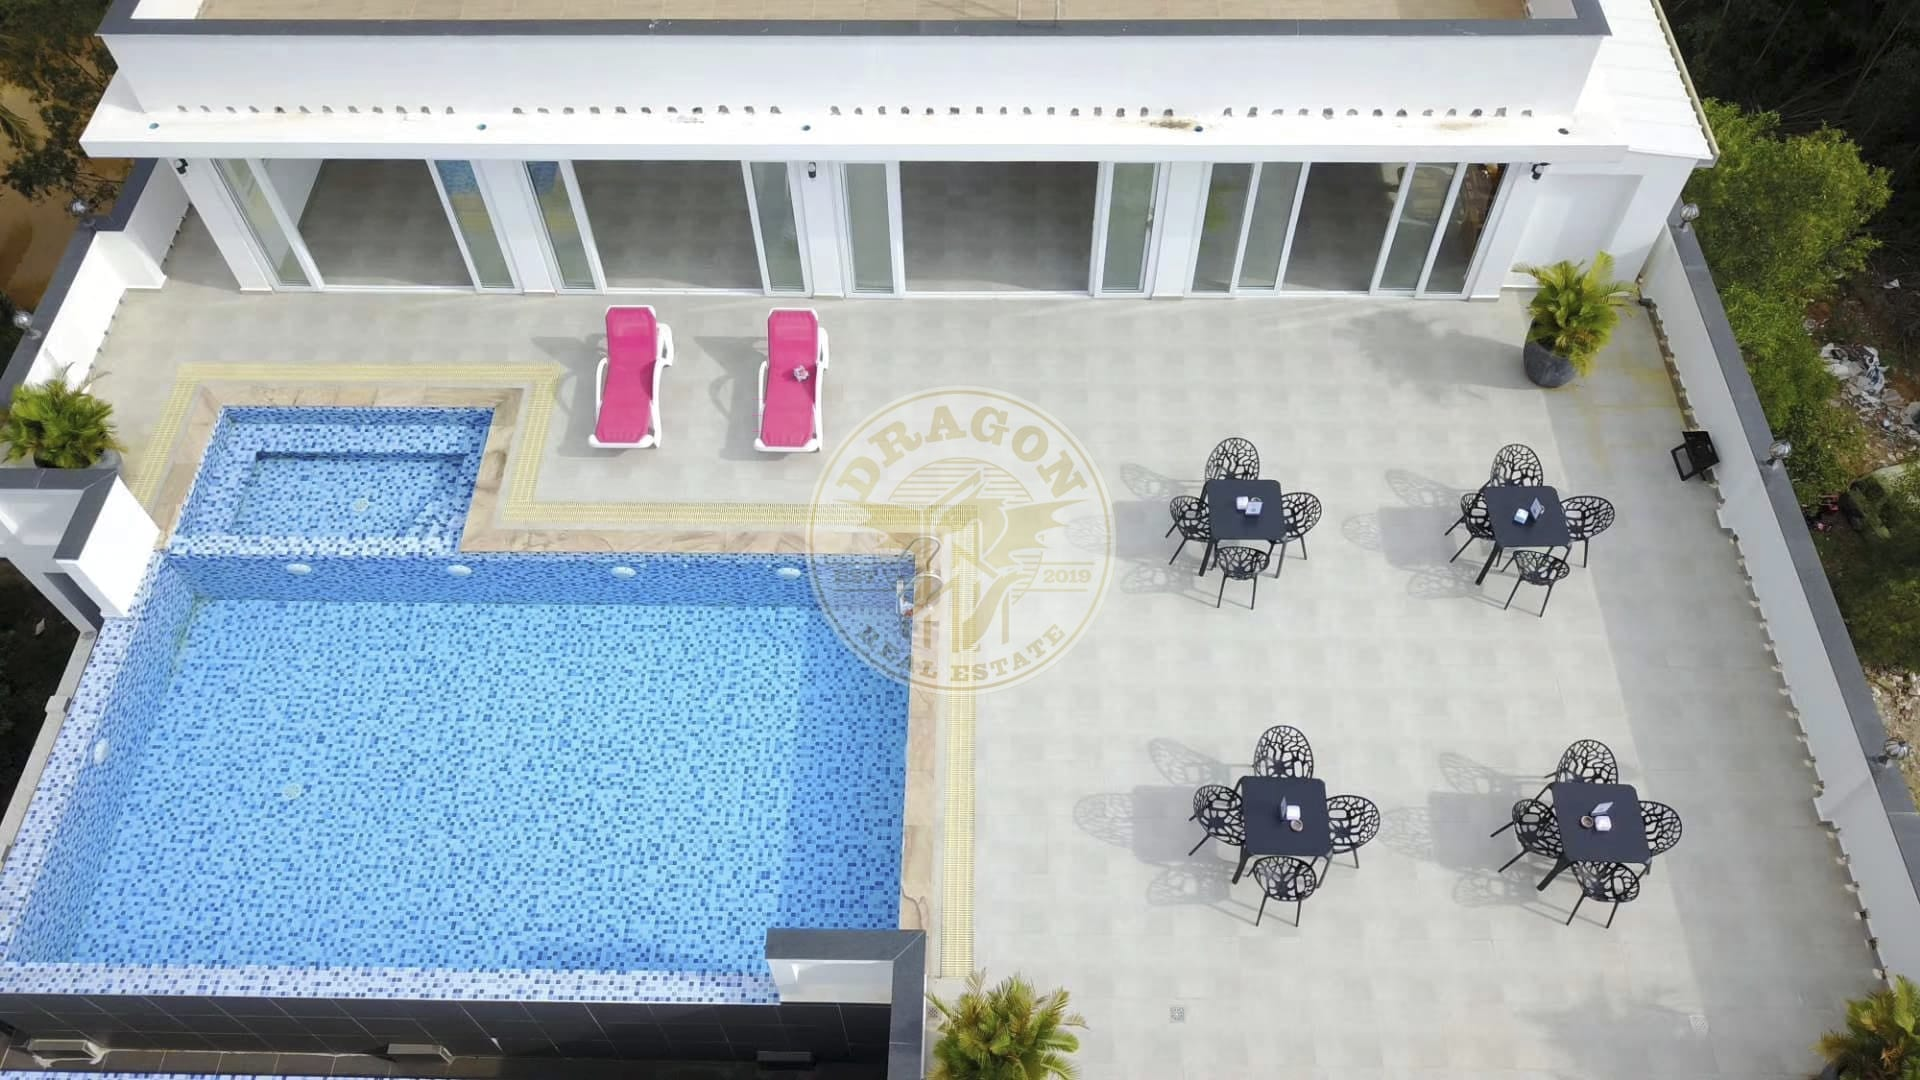 Two Bedroom for Rent. Sihanoukville Cambodia Property Sale